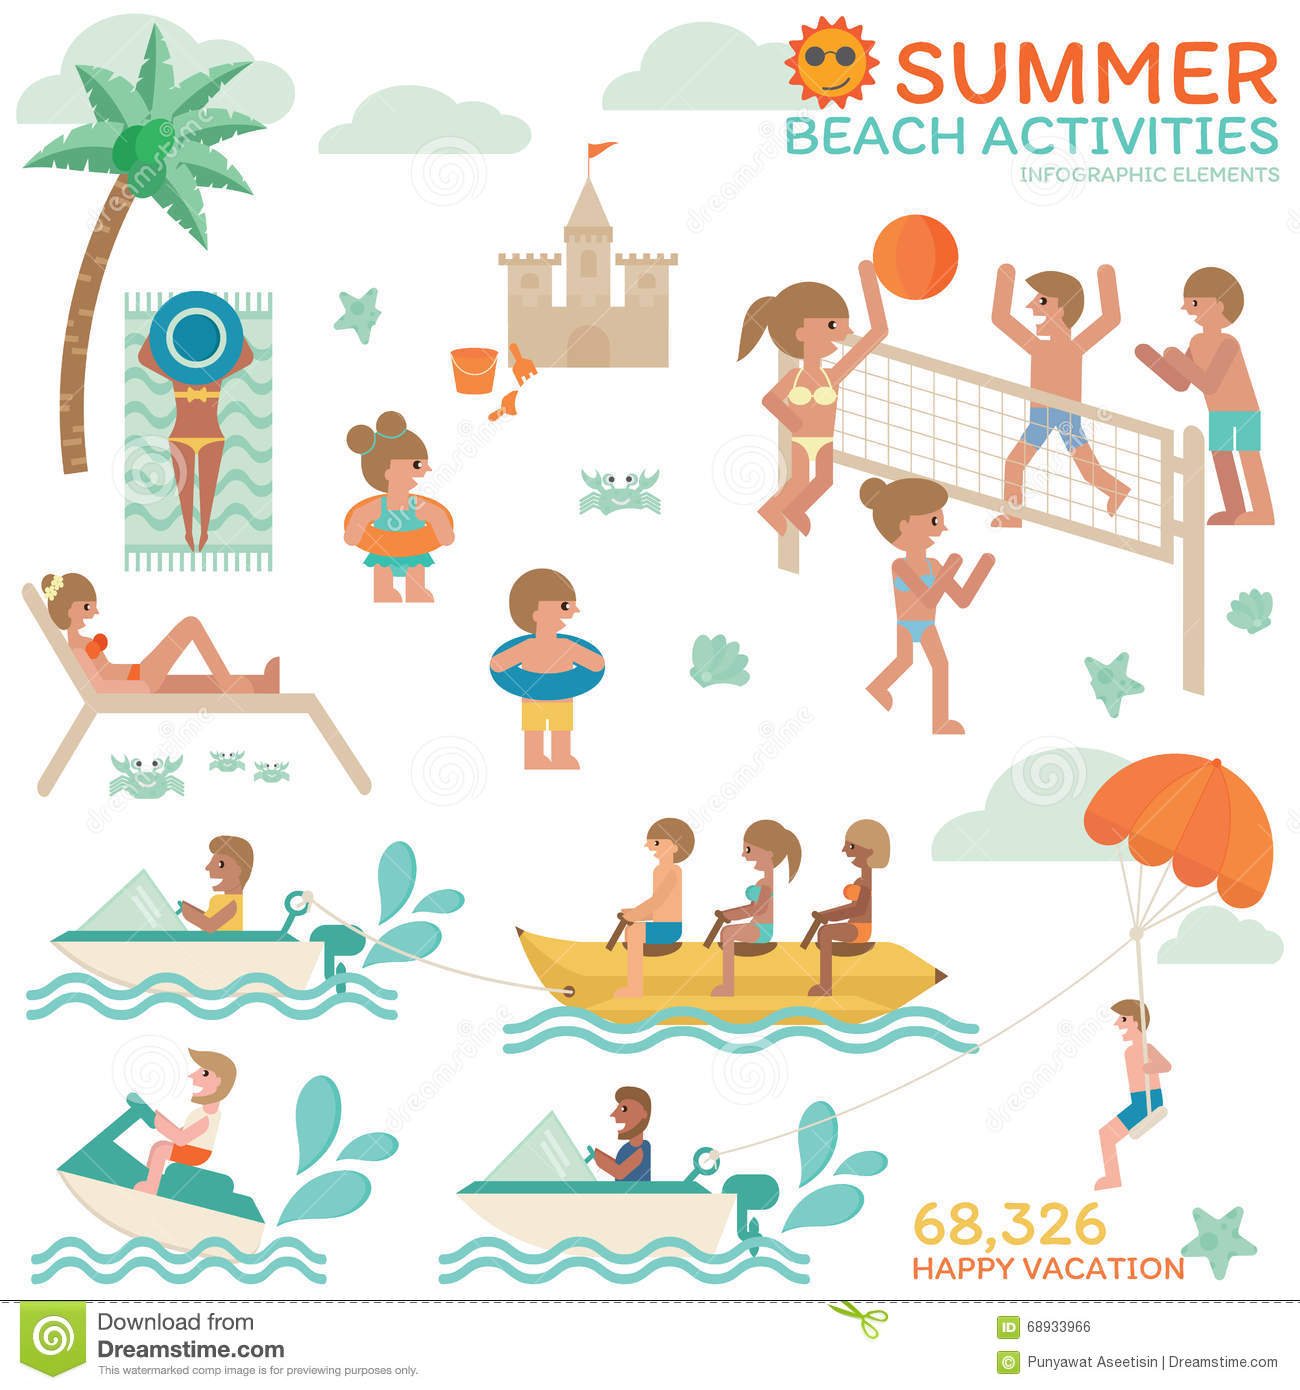 Activities clipart vector. Vacation family activity pencil